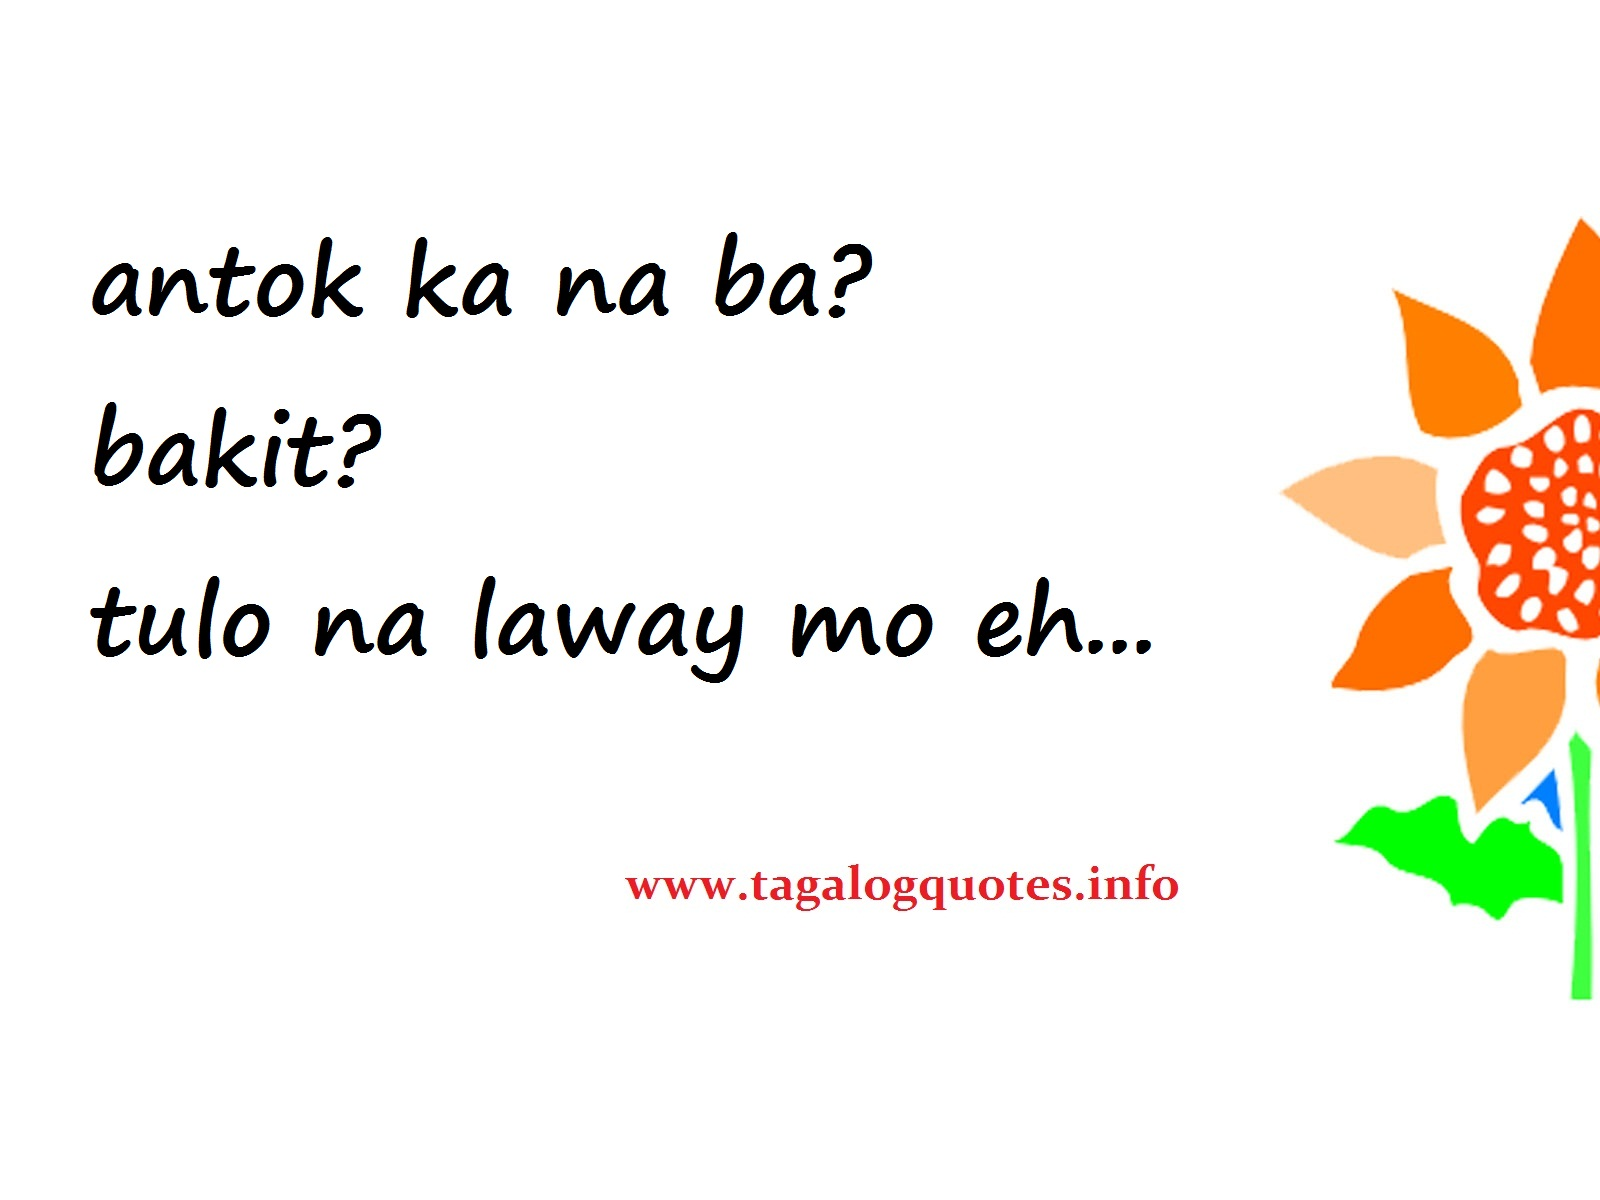 Tagalog Love Quotes Twitter View Original [Updated on 01 11 2016